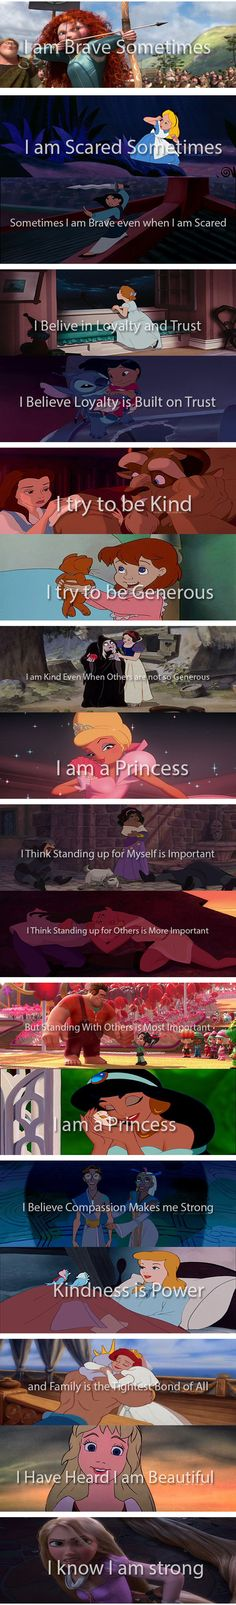 I really love the last one with Rapunzel. She will always right for her happiness. she IS strong.